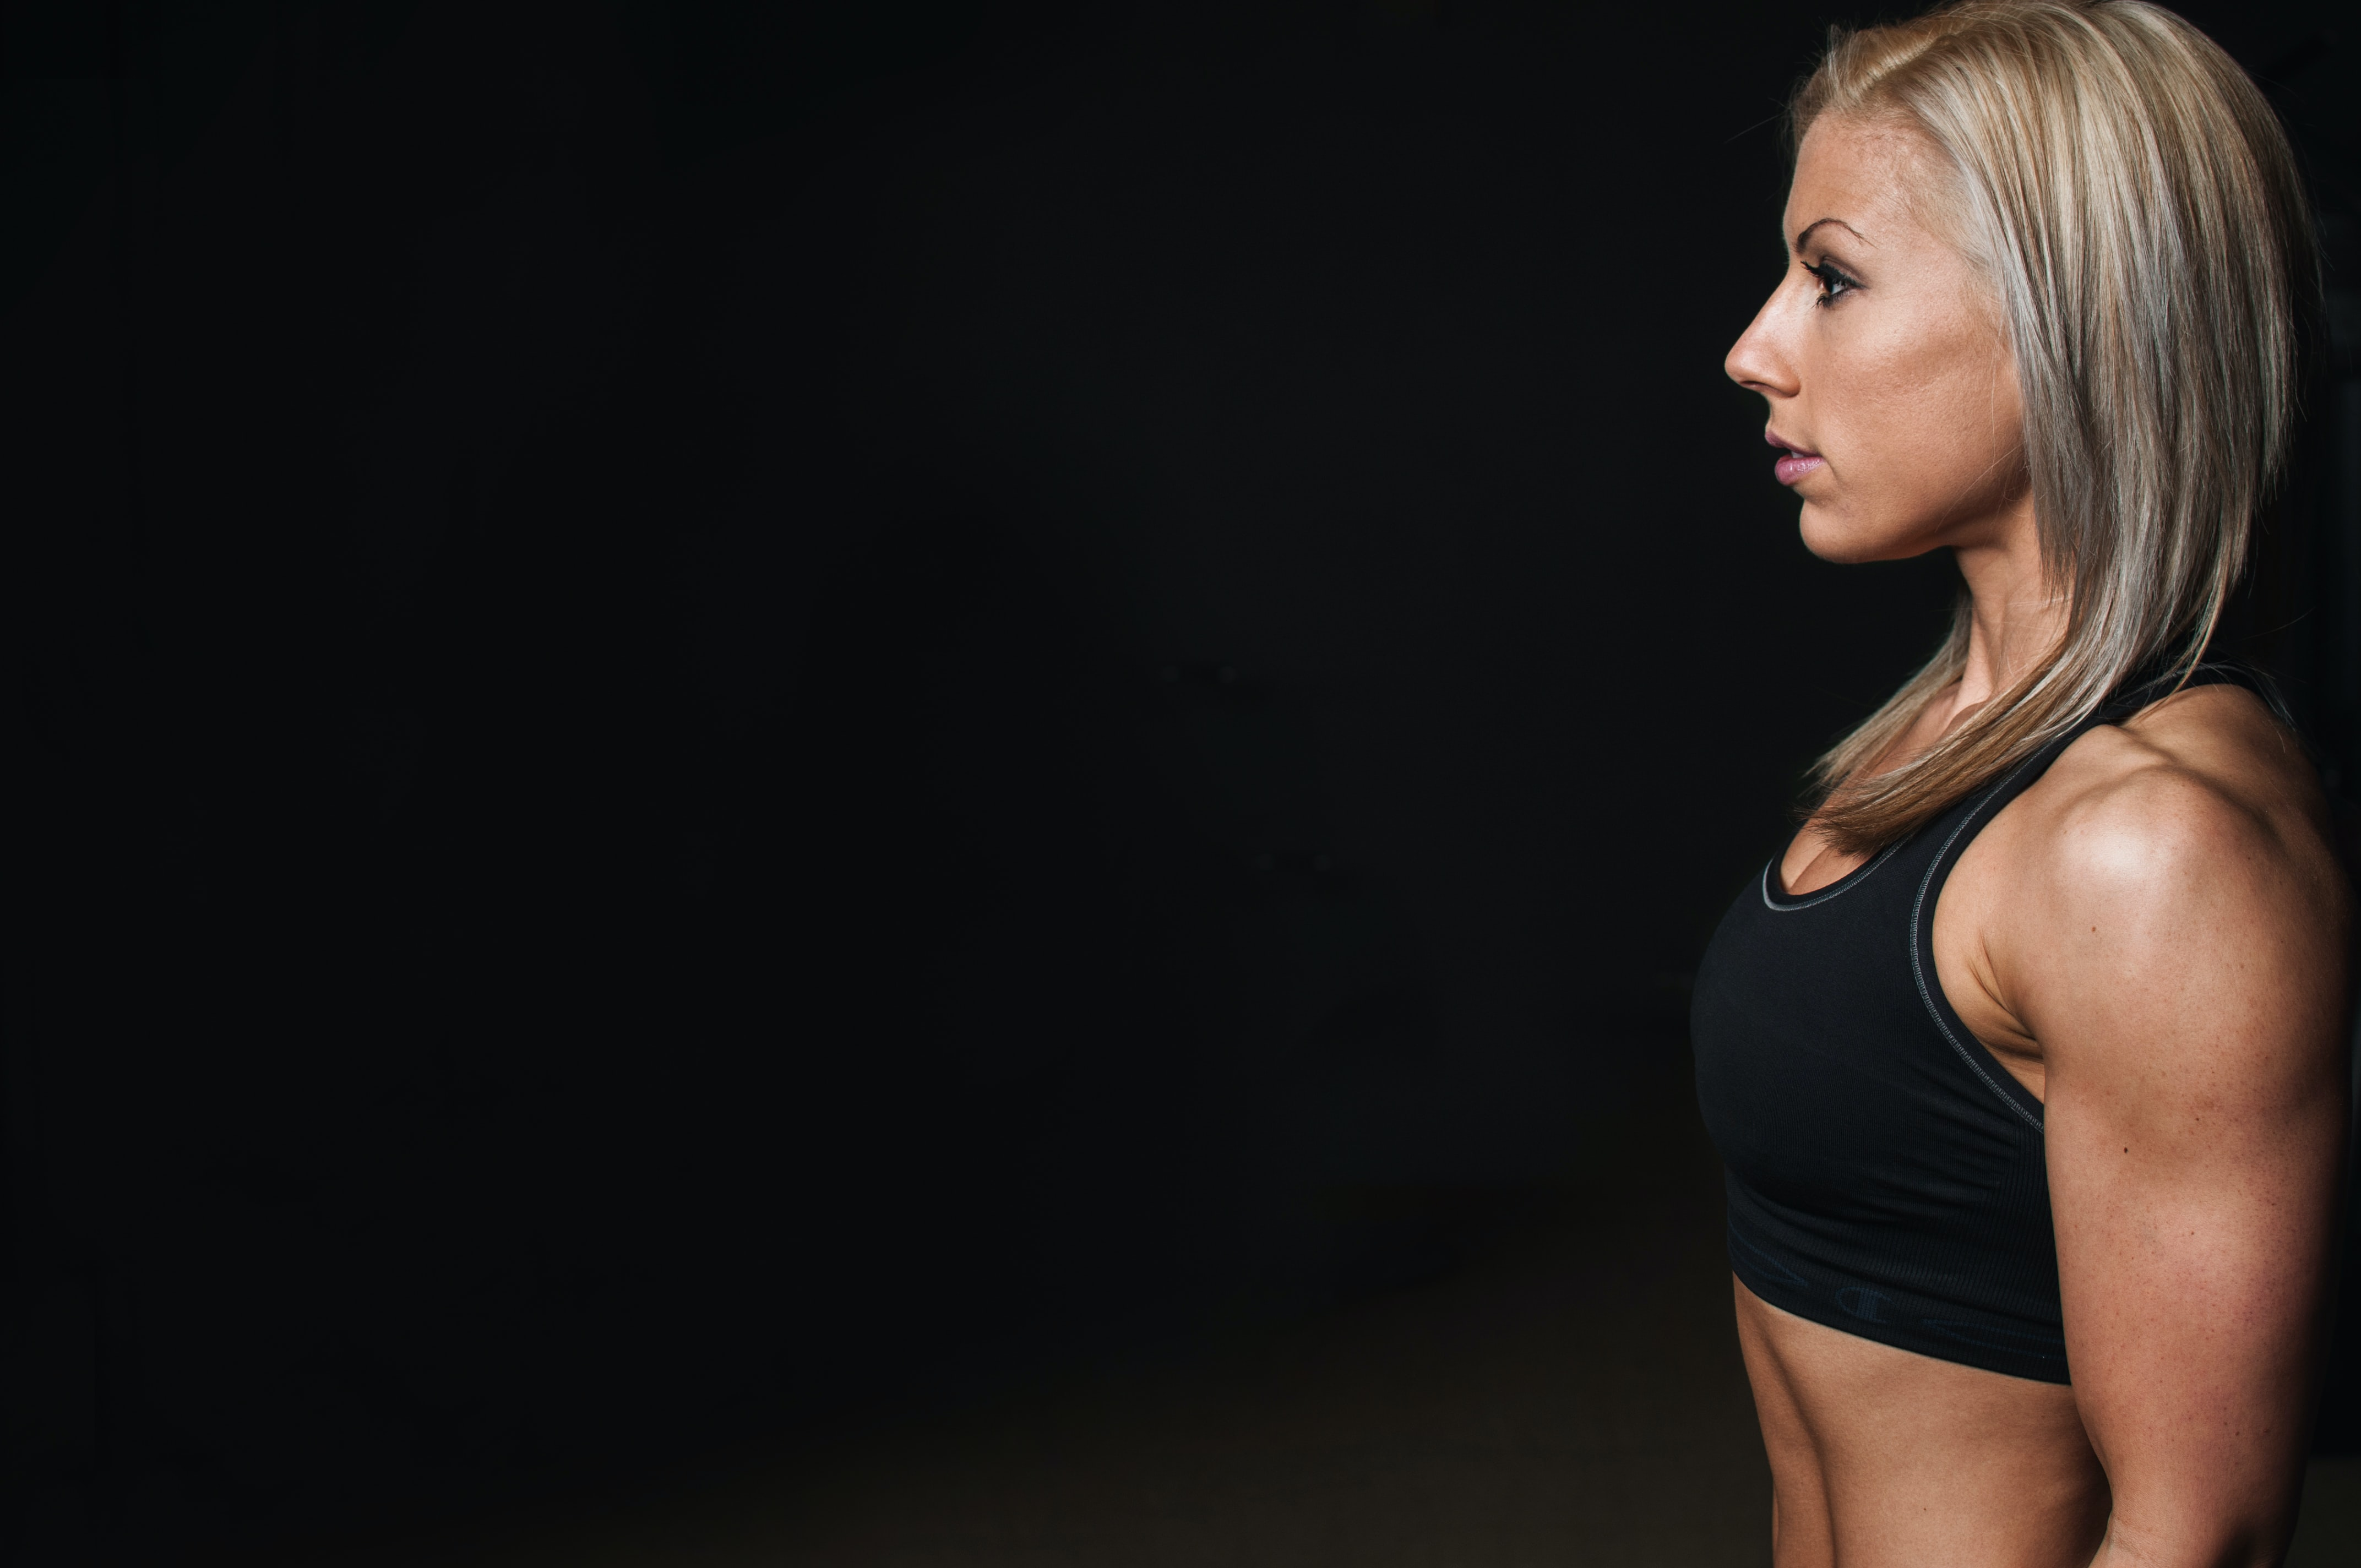 A fit blonde woman wearing a black sports bra at World Gym